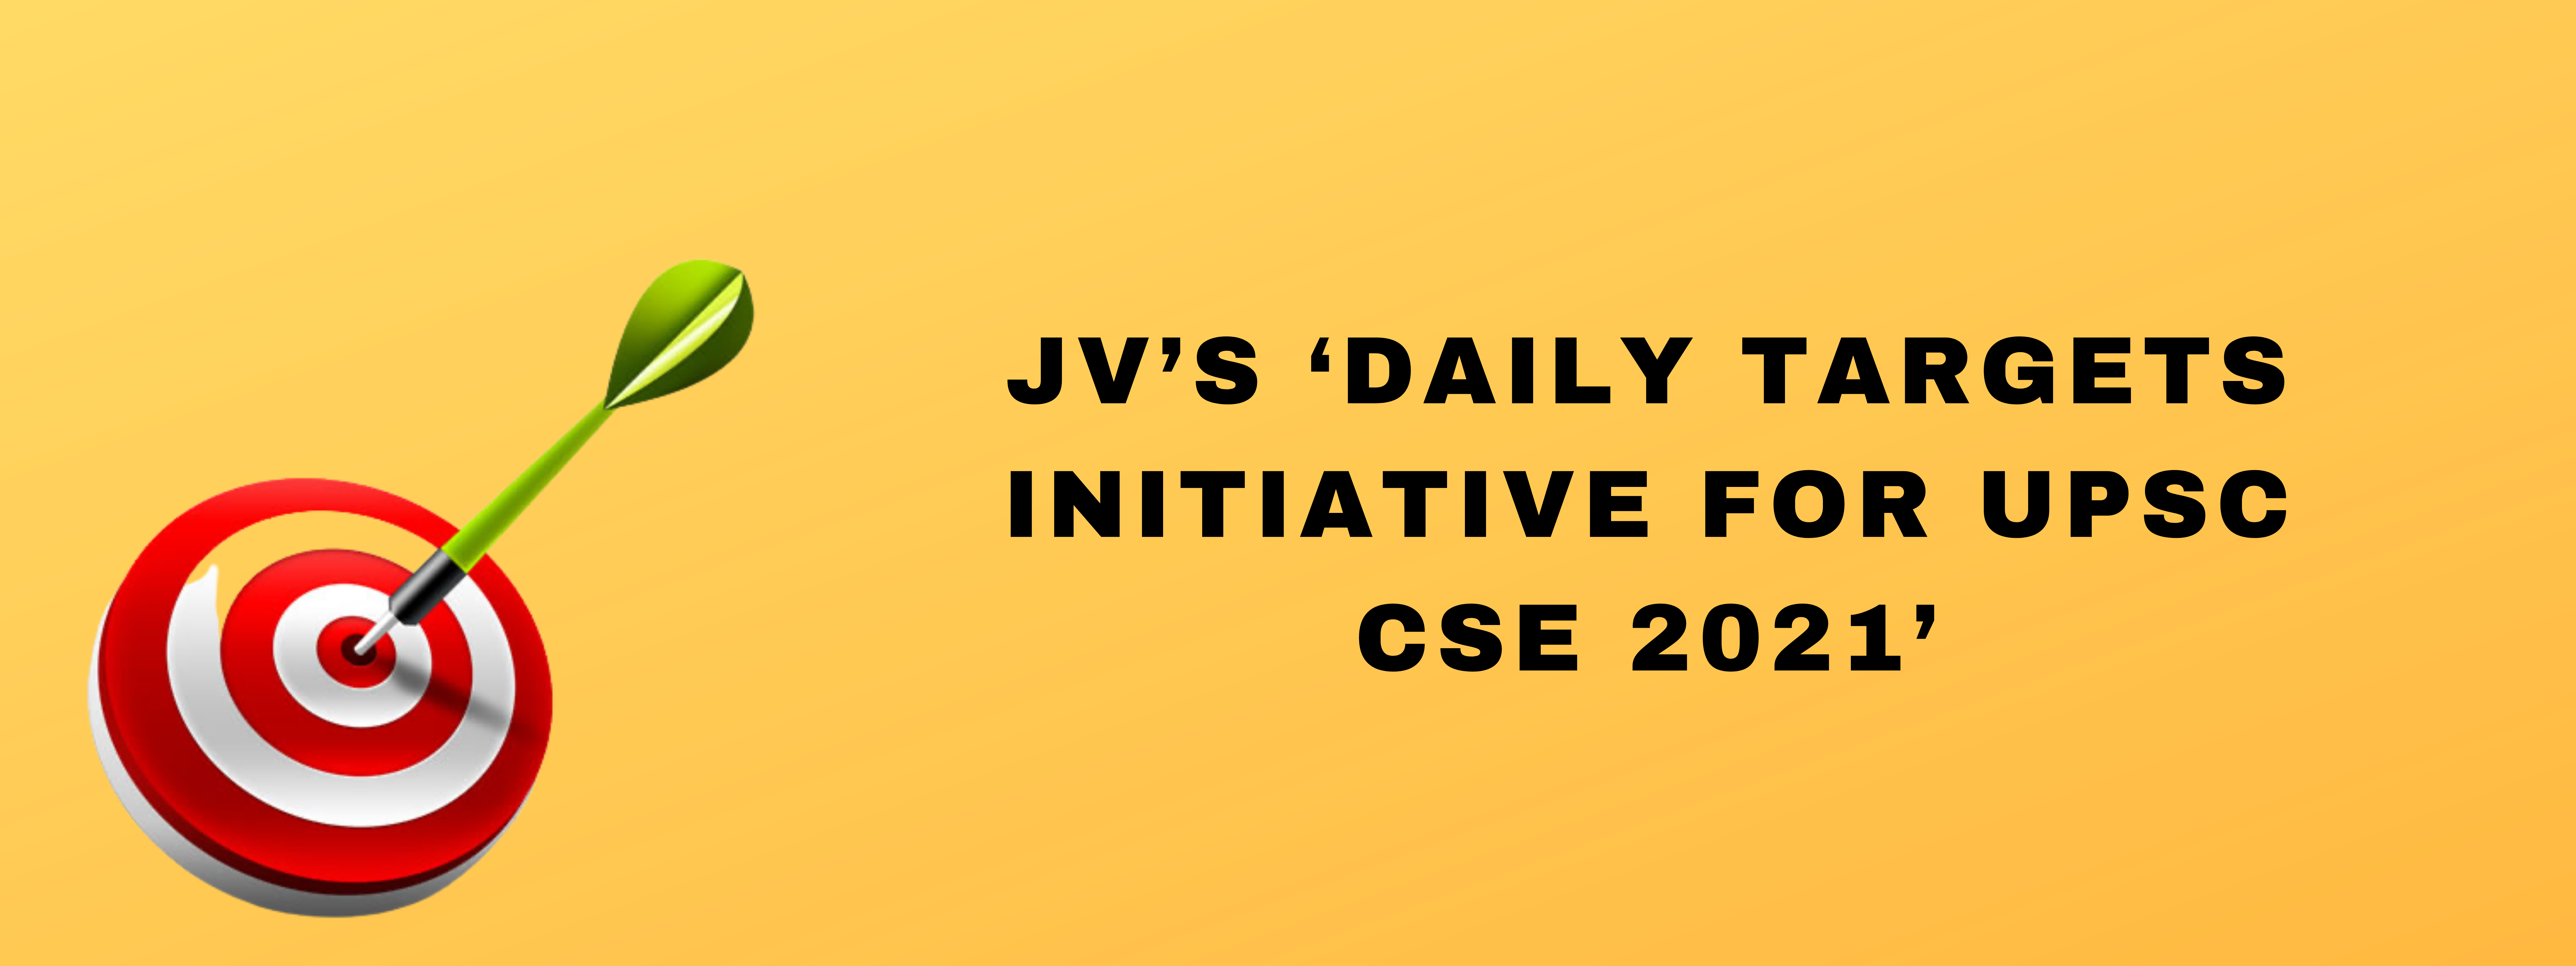 jvs-daily-targets-initiative-for-upsc-cse-2021